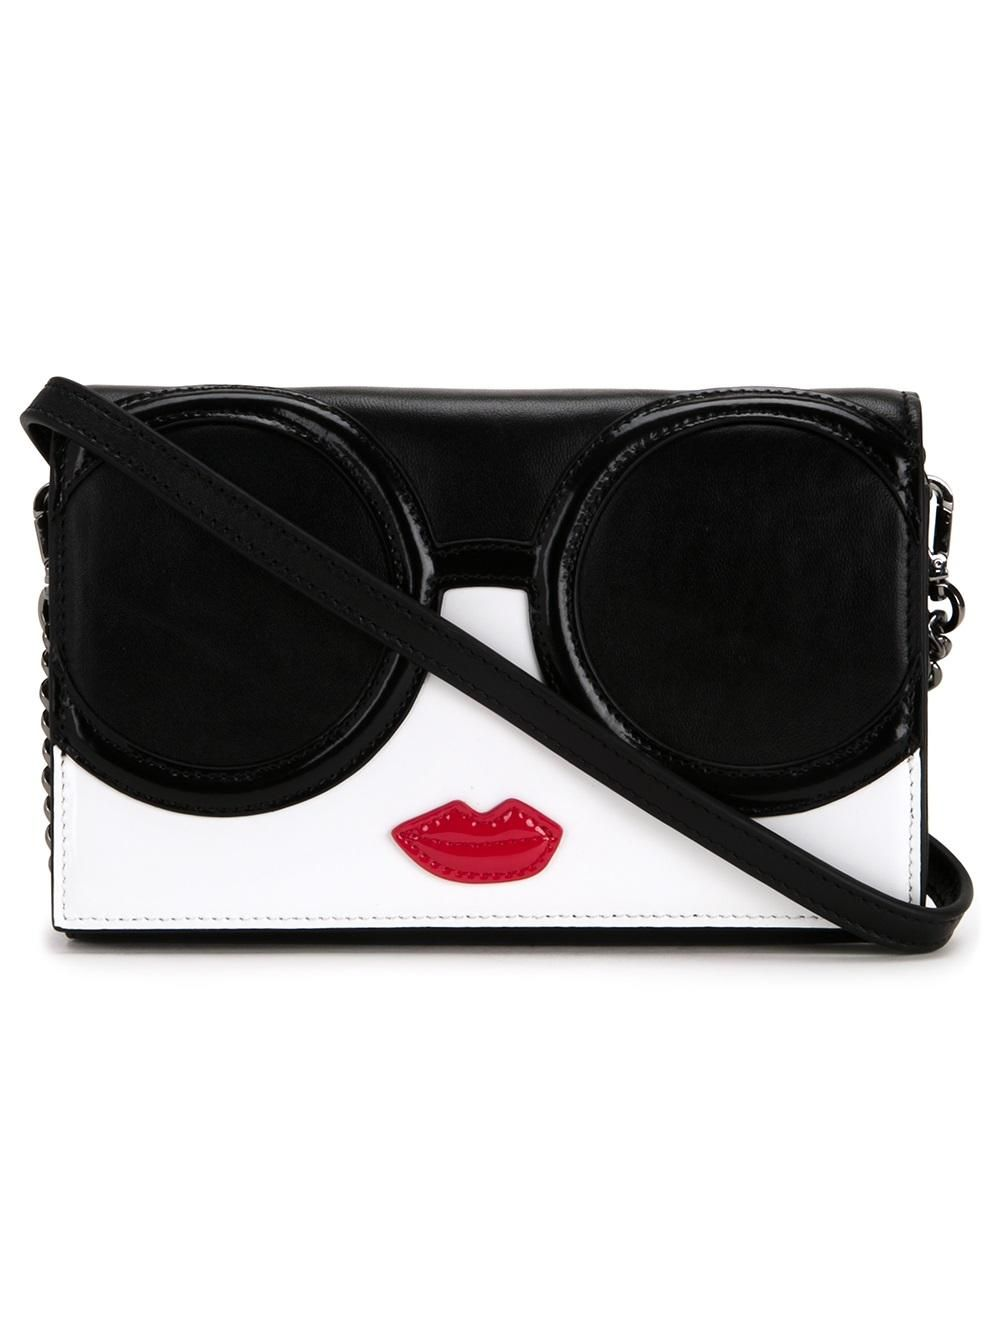 Alice Olivia Stacey Crossbody Bag